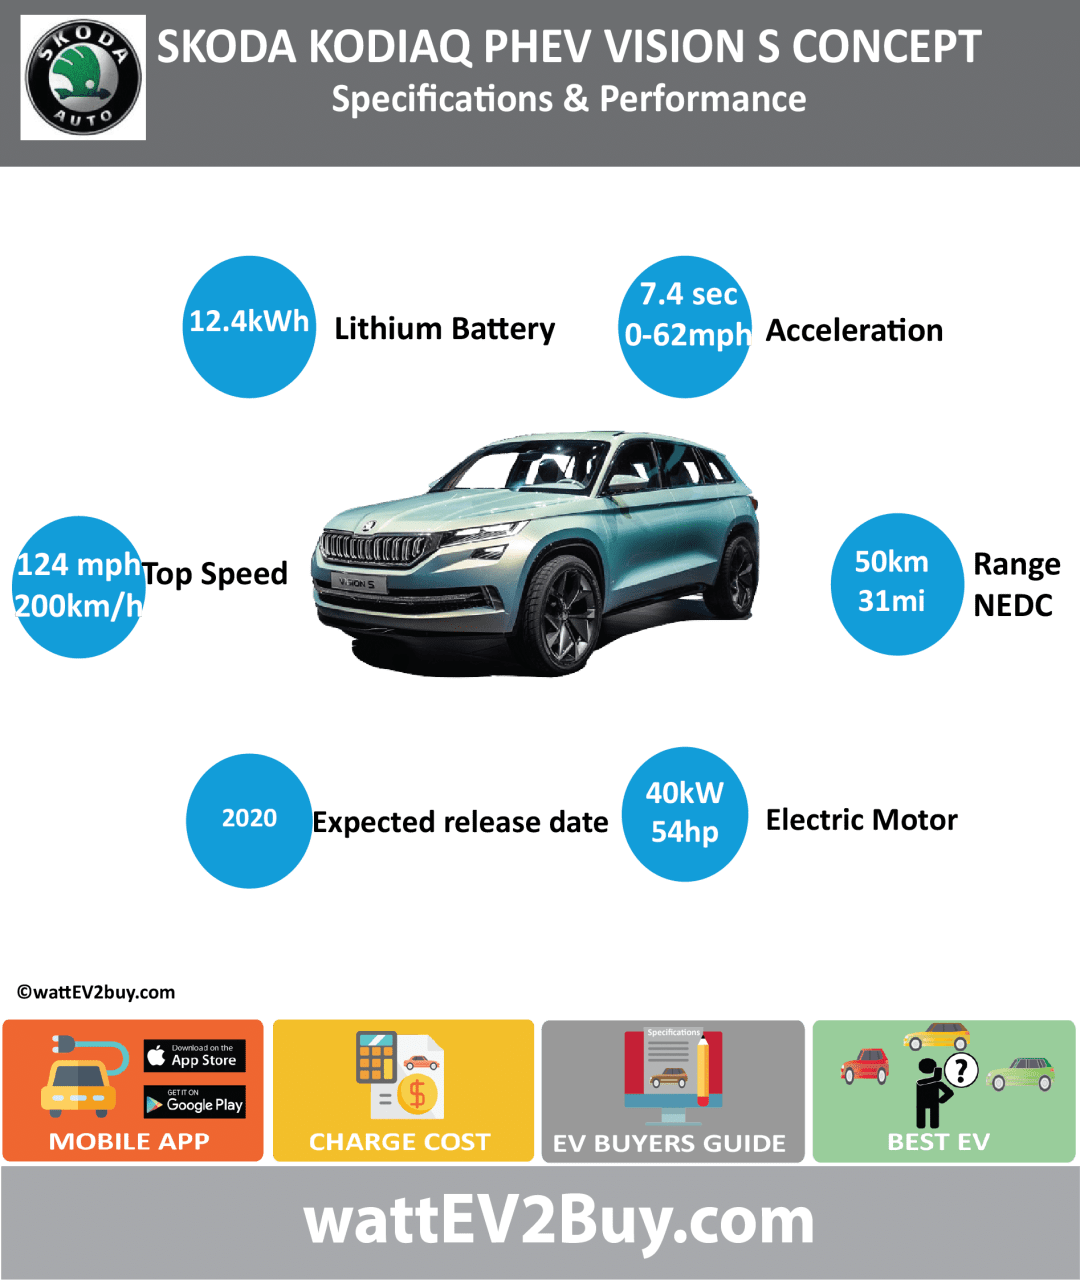 SKODA KODIAQ PHEV vision s concept specs wattev2Buy.com CONCEPT Battery Chemistry Battery Capacity kWh 12.4 Battery Nominal rating kWh Voltage V Amps Ah Cells Modules Weight (kg) Cell Type SOC Cooling Cycles Battery Type Depth of Discharge (DOD) Energy Density Wh/kg Battery Manufacturer Battery Warranty - years Battery Warranty - km Battery Warranty - miles Battery Electric Range - at constant 38mph Battery Electric Range - at constant 60km/h Battery Electric Range - NEDC Mi 31 Battery Electric Range - NEDC km 50 Battery Electric Range - CCM Mi Battery Electric Range - CCM km Battery Electric Range - EPA Mi Battery Electric Range - EPA km Electric Top Speed - mph Electric Top Speed - km/h Acceleration 0 - 100km/h sec Acceleration 0 - 50km/h sec Acceleration 0 - 62mph sec Acceleration 0 - 60mph sec Acceleration 0 - 37.2mph sec Wireless Charging Optional Direct Current Fast Charge kW Onboard Charger kW 3.6 Charger Efficiency Charging Cord - amps Charging Cord - volts LV 1 Charge kW LV 1 Charge Time (Hours) LV 2 Charge kW LV 2 Charge Time (Hours) LV 3 CCS/Combo kW LV 3 Charge Time (min to 70%) LV 3 Charge Time (min to 80%) LV 3 Charge Time (mi) LV 3 Charge Time (km) Charging System kW Charger Output Charge Connector CEE Socket Power Outlet kW Power Outlet Amps MPGe Combined - miles MPGe Combined - km MPGe City - miles MPGe City - km MPGe Highway - miles MPGe Highway - km Max Power - hp (Electric Max) Max Power - kW (Electric Max) Max Torque - lb.ft (Electric Max) Max Torque - N.m (Electric Max) Drivetrain Electric Motor Manufacturer Generator Electric Motor - Front Max Power - hp (Front) Max Power - kW (Front) Max Torque - lb.ft (Front) Max Torque - N.m (Front) Electric Motor - Rear 1 Max Power - hp (Rear) 54 Max Power - kW (Rear) 40 Max Torque - lb.ft (Rear) 162 Max Torque - N.m (Rear) 222 Motor Type Electric Motor Output kW Electric Motor Output hp Electric Motor Transmission Energy Consumption kWh/100km Energy Consumption kWh/100miles Deposit Lease pm GB Battery Lease per month EU Battery Lease per month MSRP (expected) EU MSRP (before incentives & destination) GB MSRP (before incentives & destination) US MSRP (before incentives & destination) CHINA MSRP (before incentives & destination) MSRP after incentives Vehicle Trims Doors Seating Dimensions Fuel tank (gal) Fuel tank (L) Luggage (L) GVWR (kg) GVWR (lbs) Curb Weight (kg) Curb Weight (lbs) Payload Capacity (kg) Payload Capacity (lbs) Towing Capacity (lbs) Max Load Height (m) Ground Clearance (inc) Ground Clearance (mm) Lenght (mm) Width (mm) Height (mm) Wheelbase (mm) Lenght (inc) Width (inc) Height (inc) Wheelbase (inc) Combustion 1.4 Petrol Extended Range - mile 621 Extended Range - km 1006 ICE Max Power - hp 154 ICE Max Power - kW ICE Max Torque - lb.ft 184 ICE Max Torque - N.m ICE Top speed - mph 124 ICE Top speed - km/h 200 ICE Acceleration 0 - 50km/h sec ICE Acceleration 0 - 62mph sec 7.4 ICE Acceleration 0 - 60mph sec ICE MPGe Combined - miles ICE MPGe Combined - km ICE MPGe City - miles ICE MPGe City - km ICE MPGe Highway - miles ICE MPGe Highway - km ICE Transmission ICE Fuel Consumption l/100km ICE MPG Fuel Efficiency ICE Emission Rating ICE Emissions CO2/mi grams ICE Emissions CO2/km grams Total System Total Output kW 165 Total Output hp 222 Total Tourque lb.ft 199 Total Tourque N.m 270 MPGe Electric Only - miles Fuel Consumption l/100km Emissions CO2/km grams 45 Other Utility Factor Auto Show Unveil Market Segment Reveal Date Class Safety Level Unveiled Relaunch First Delivery Chassis designed Based On AKA Self-Driving System SAE Autonomous Level Connectivity Unique Extras Incentives Home Charge Installation Public Charging Subsidy